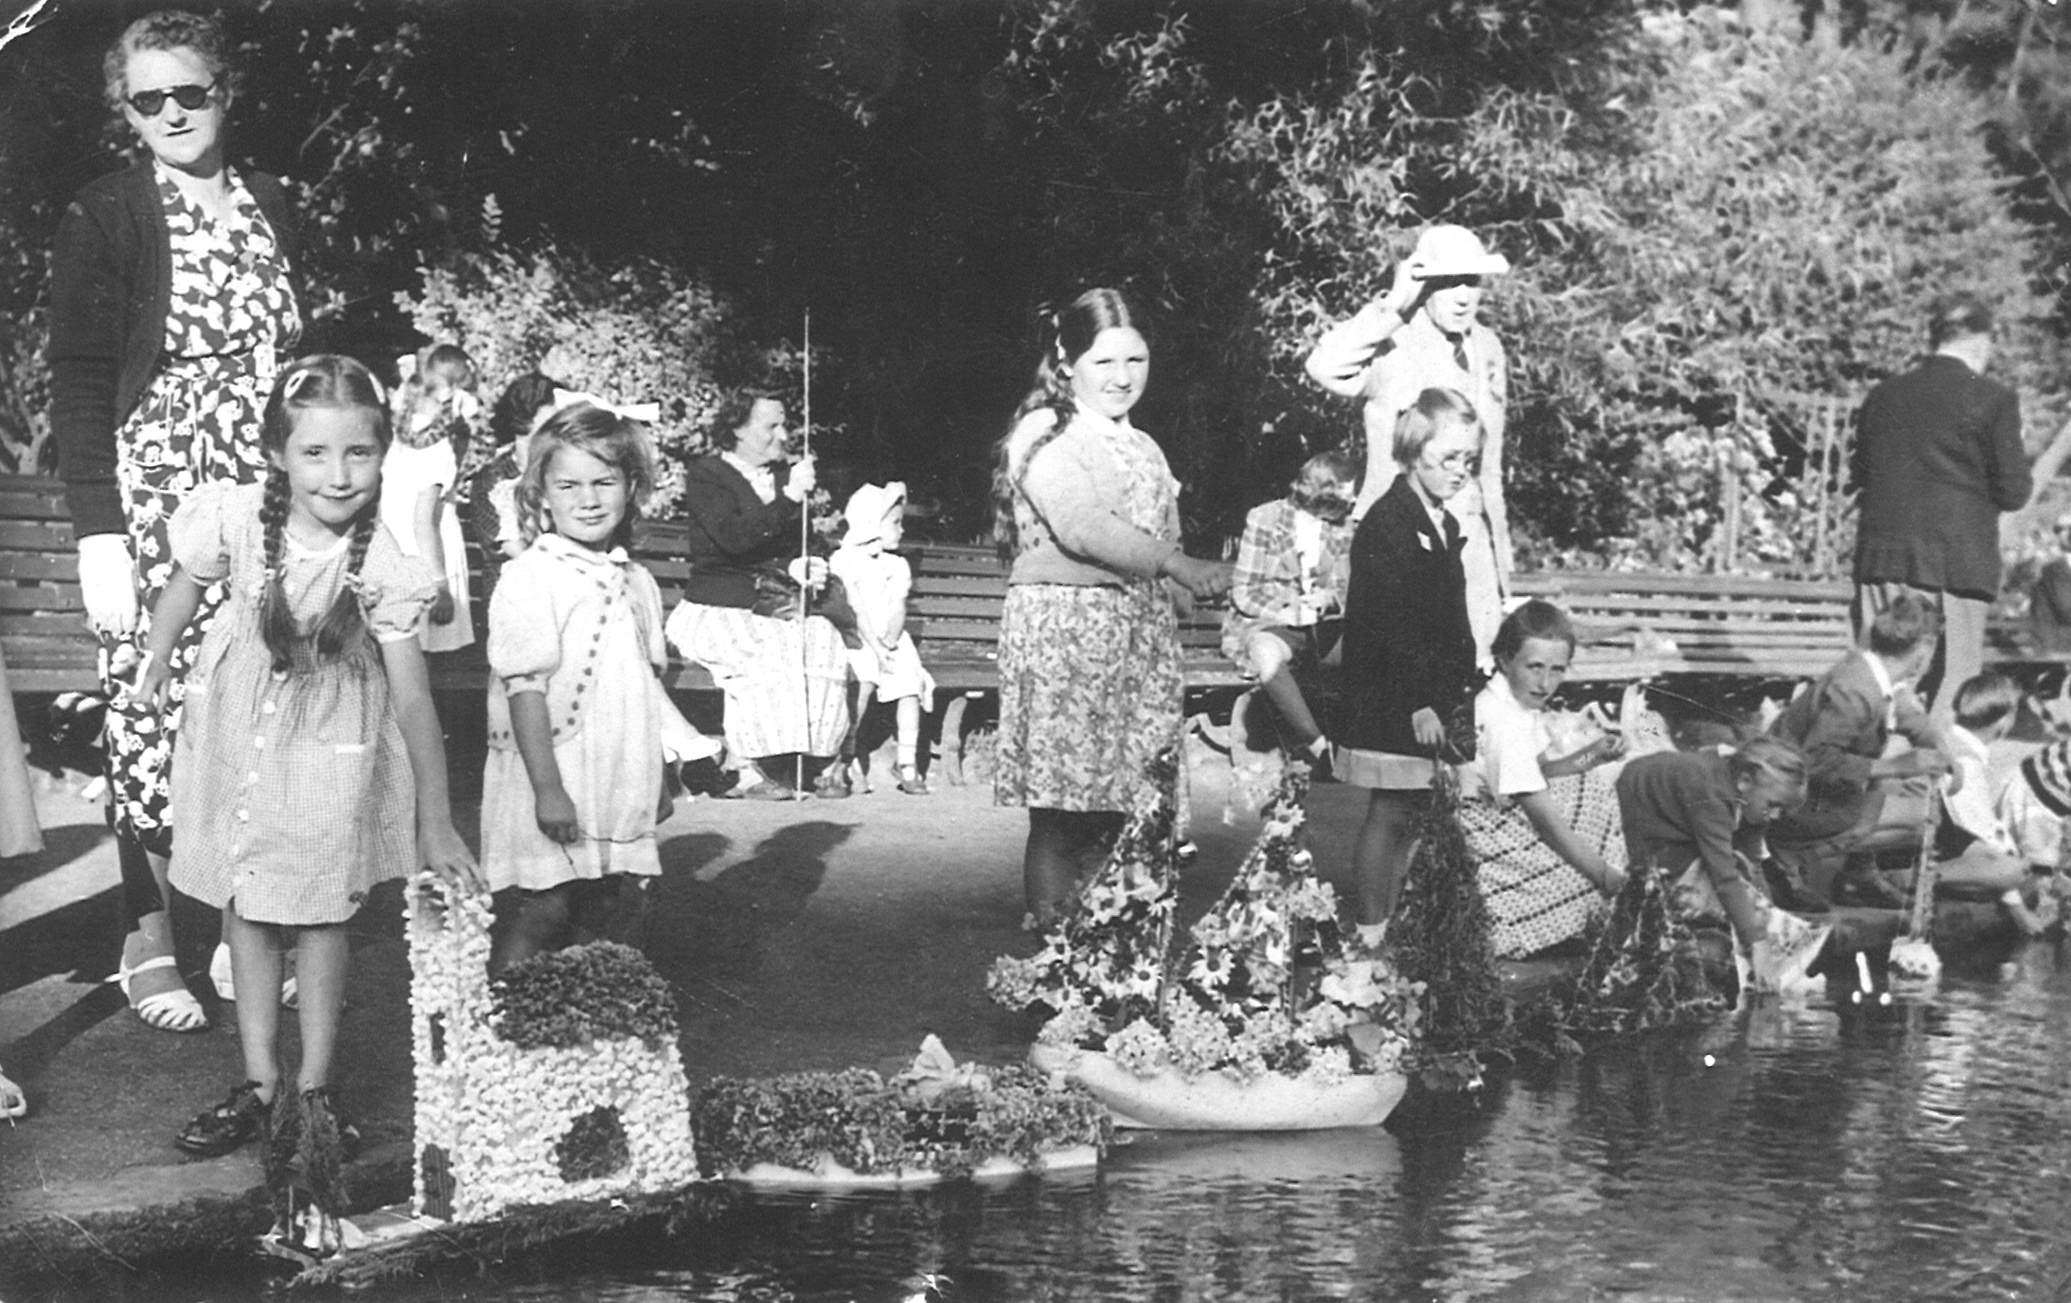 Janet Christopher (nee Gawler) of Ringwood sent in a picture of Bournemouth Regatta boat decorating competition on Bourne Stream, Bournemouth Pleasure Gardens, in 1952. She is the small girl in a white dress and her boat was decorated with a lady in a gar